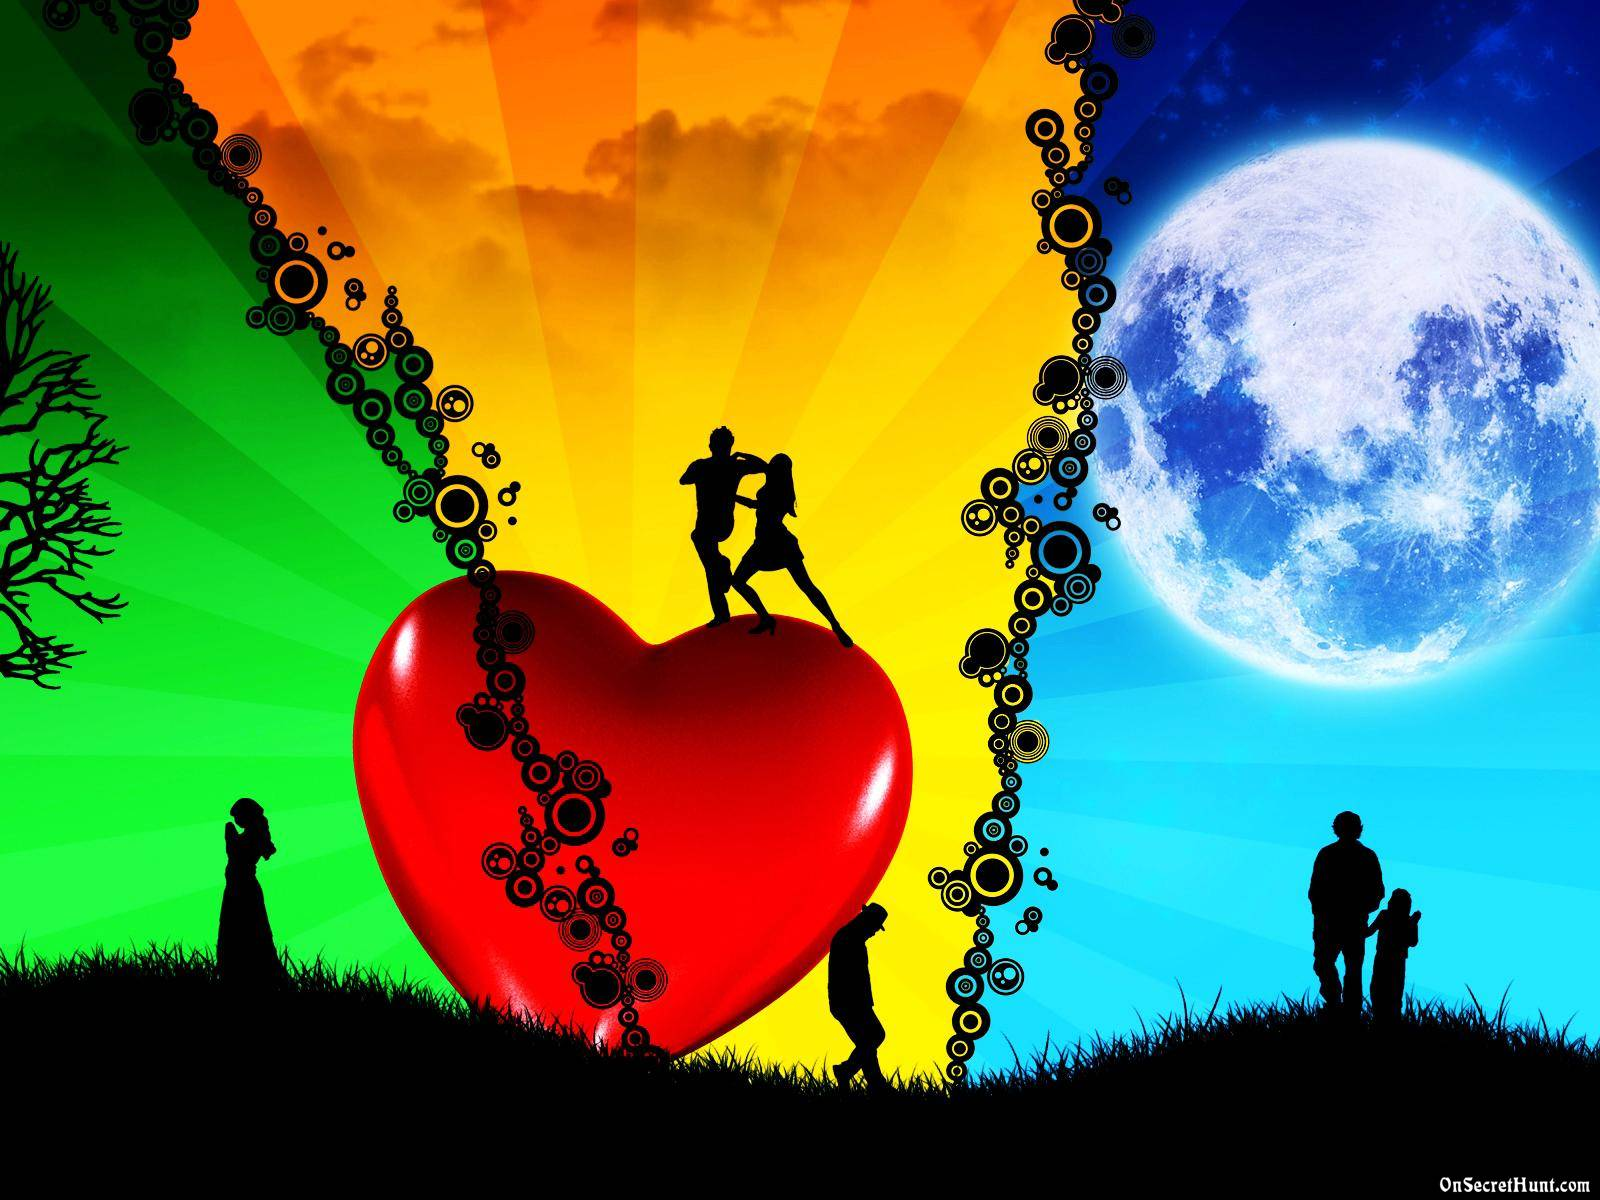 Love Wallpaper In Big Size : Love Wallpapers 3D - Wallpaper cave